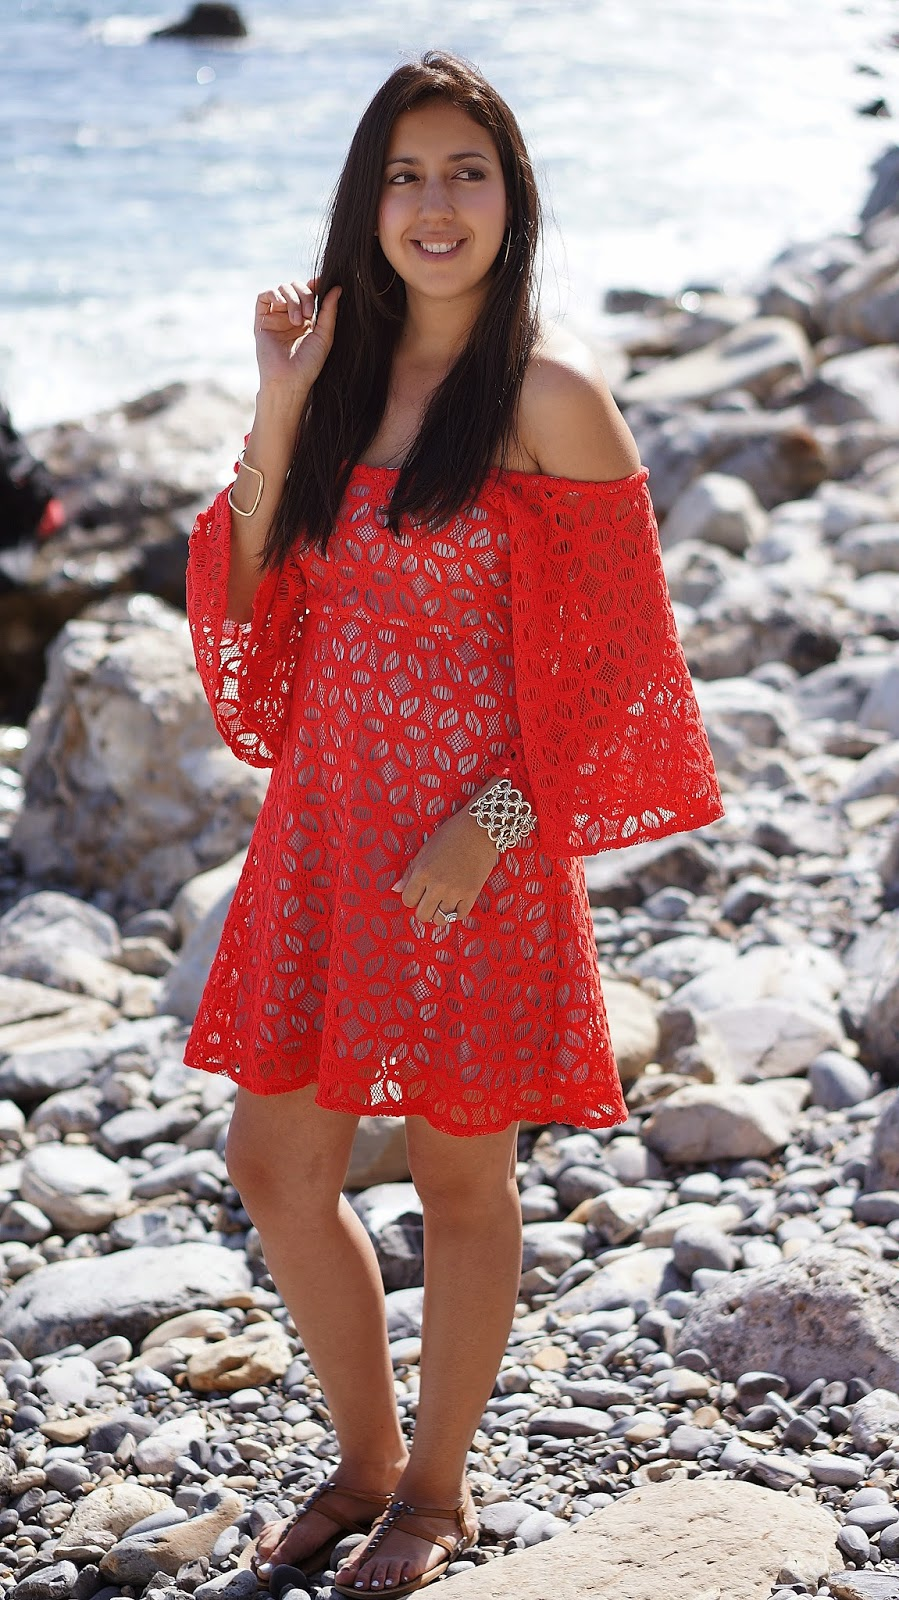 Off the shoulder red dress, Terranea Resort Trail, Summer fashion